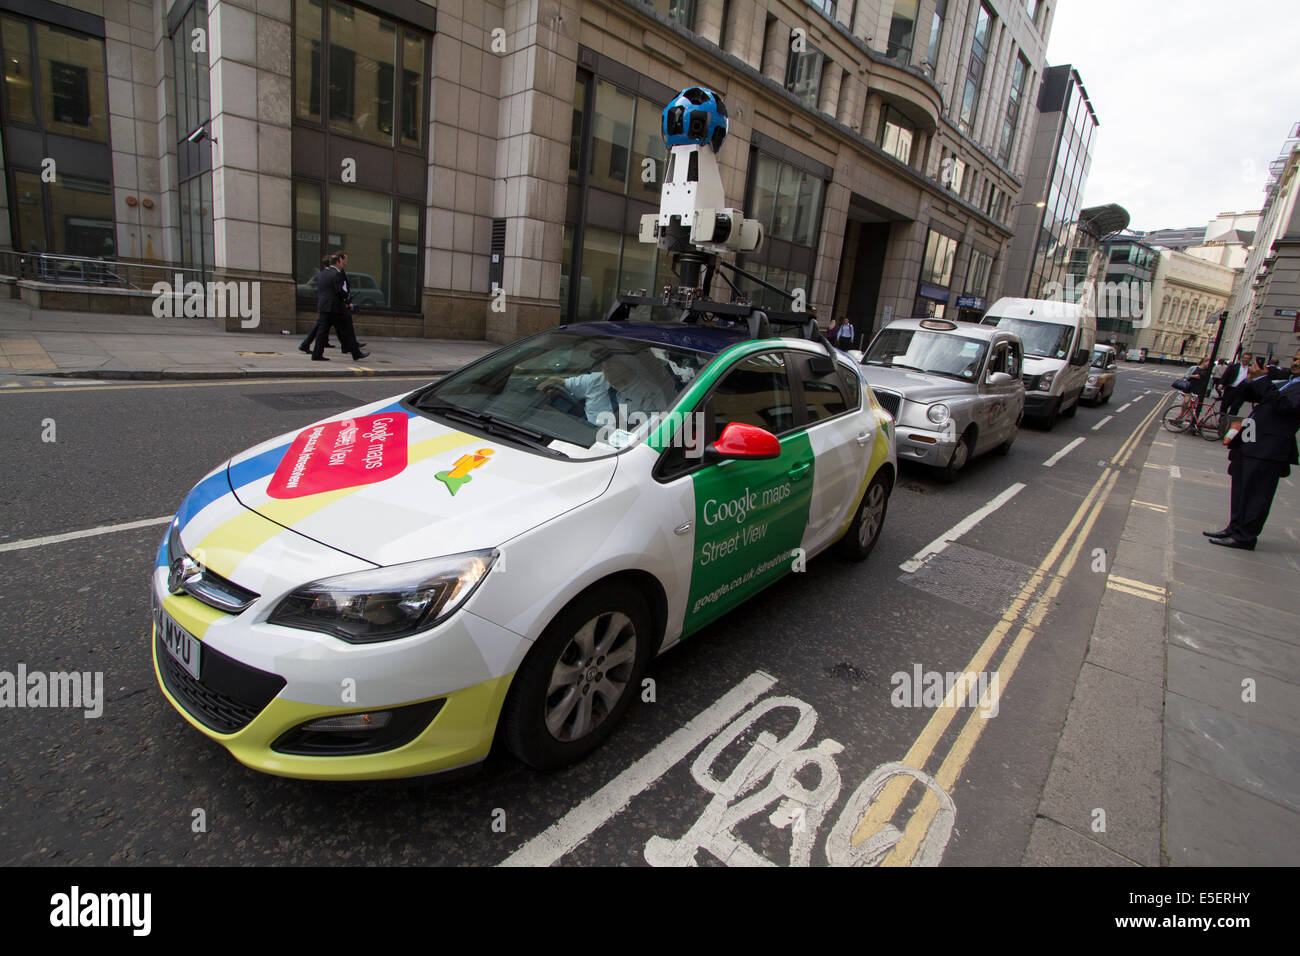 Google Mapping Stock Photos & Google Mapping Stock Images ... on google earth camera car, google street view car, maps car with camera,